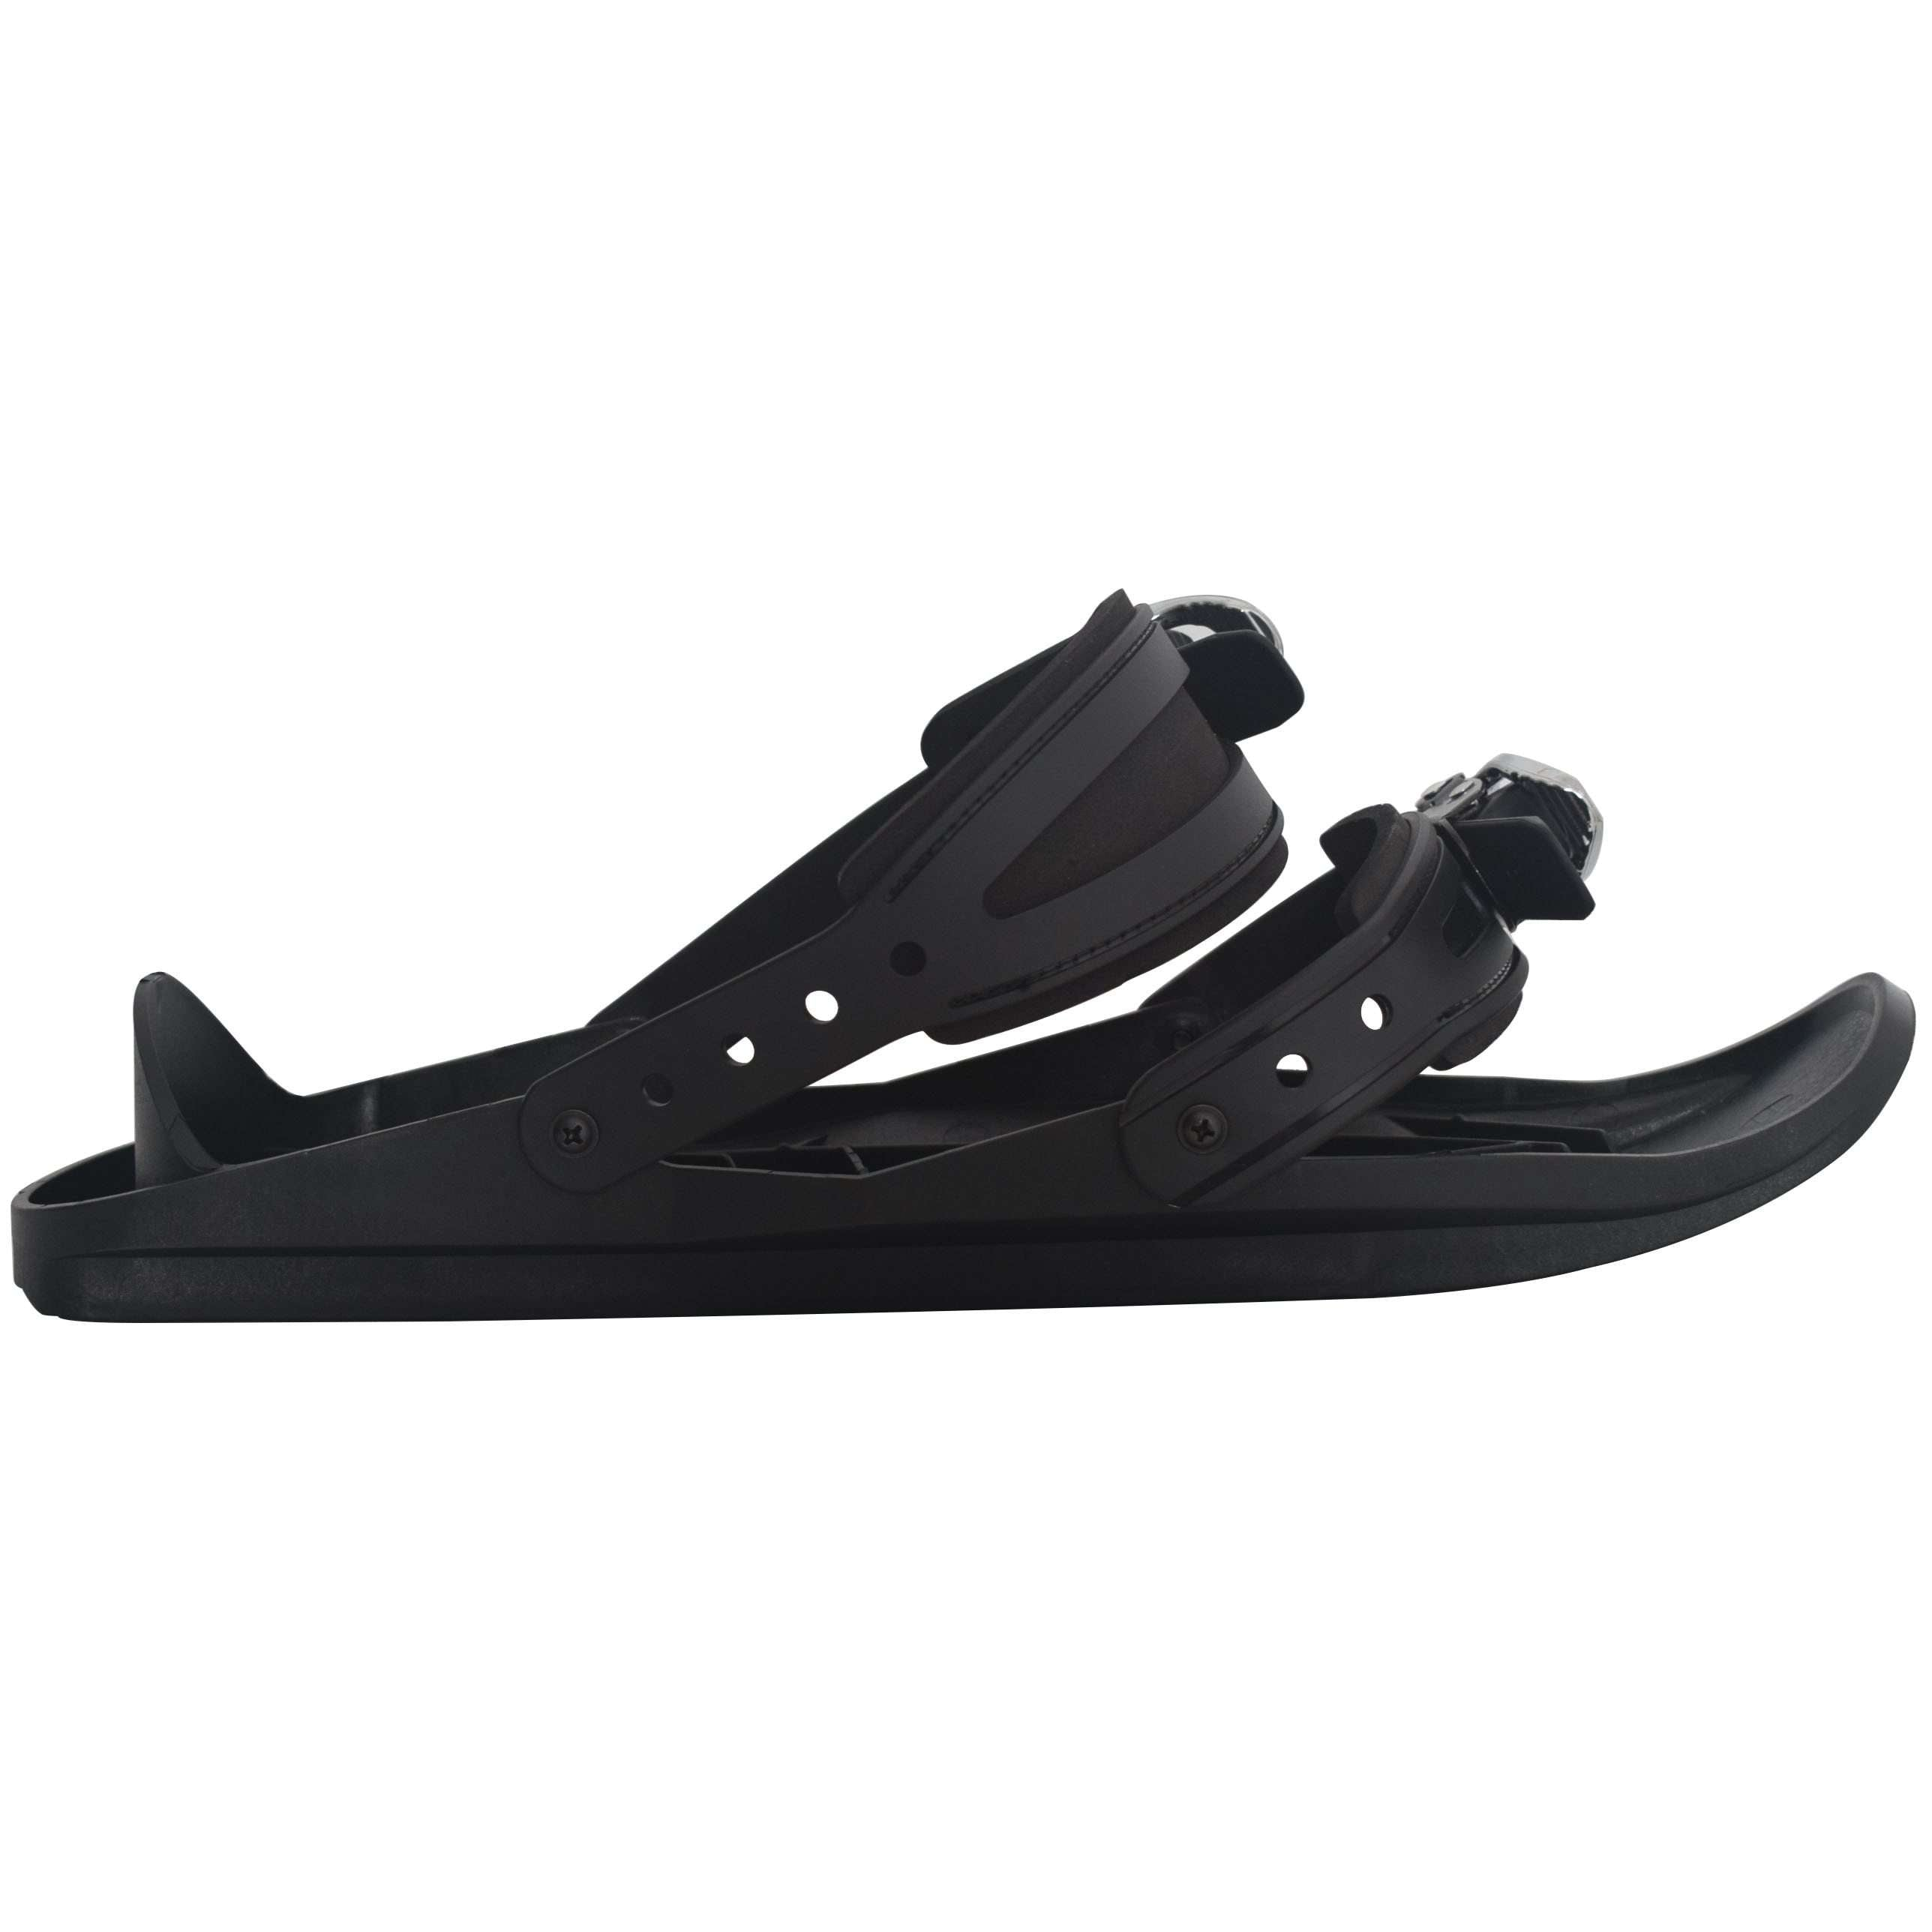 Mini Ski Shoes - Blazing Dealz